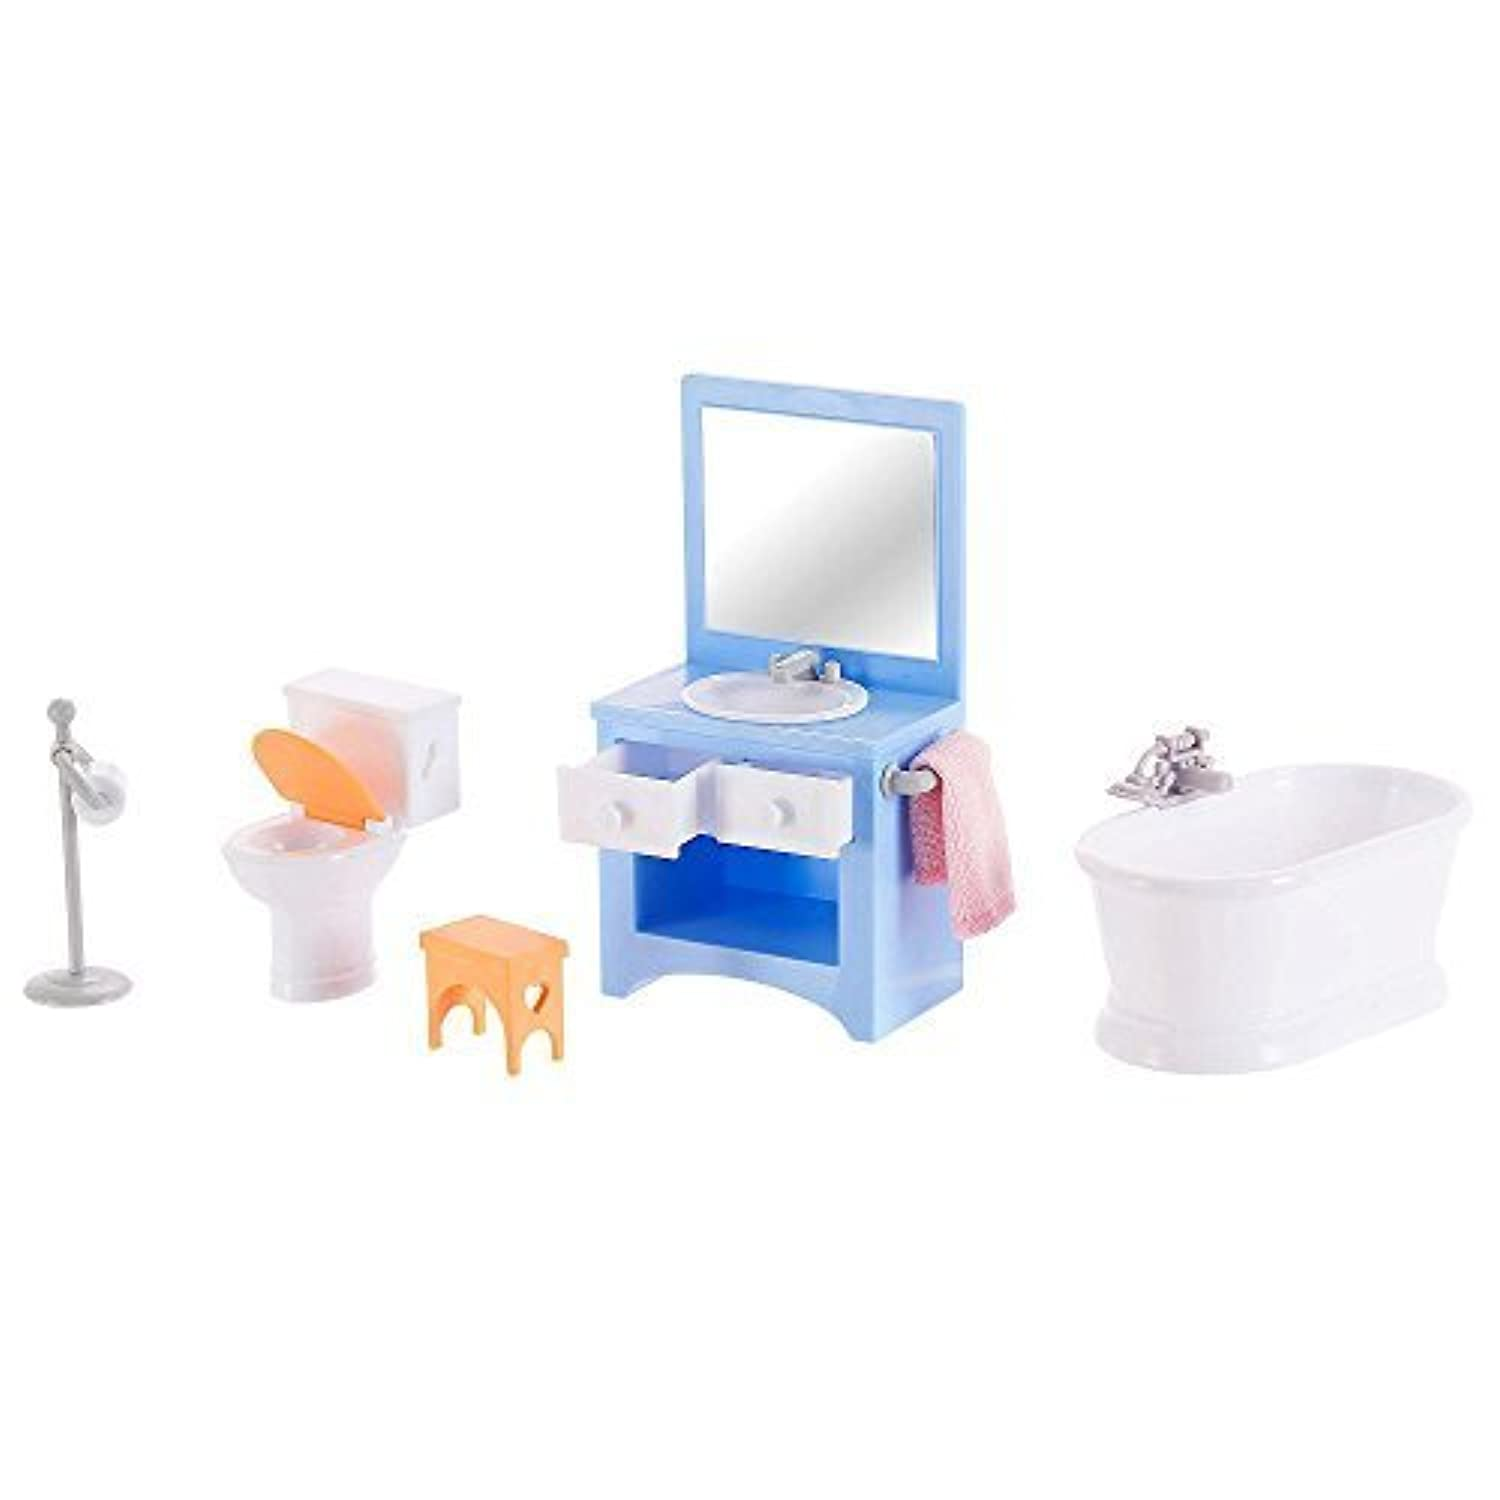 You & Me Happy Together Bathroom Set by Toys R Us [並行輸入品]